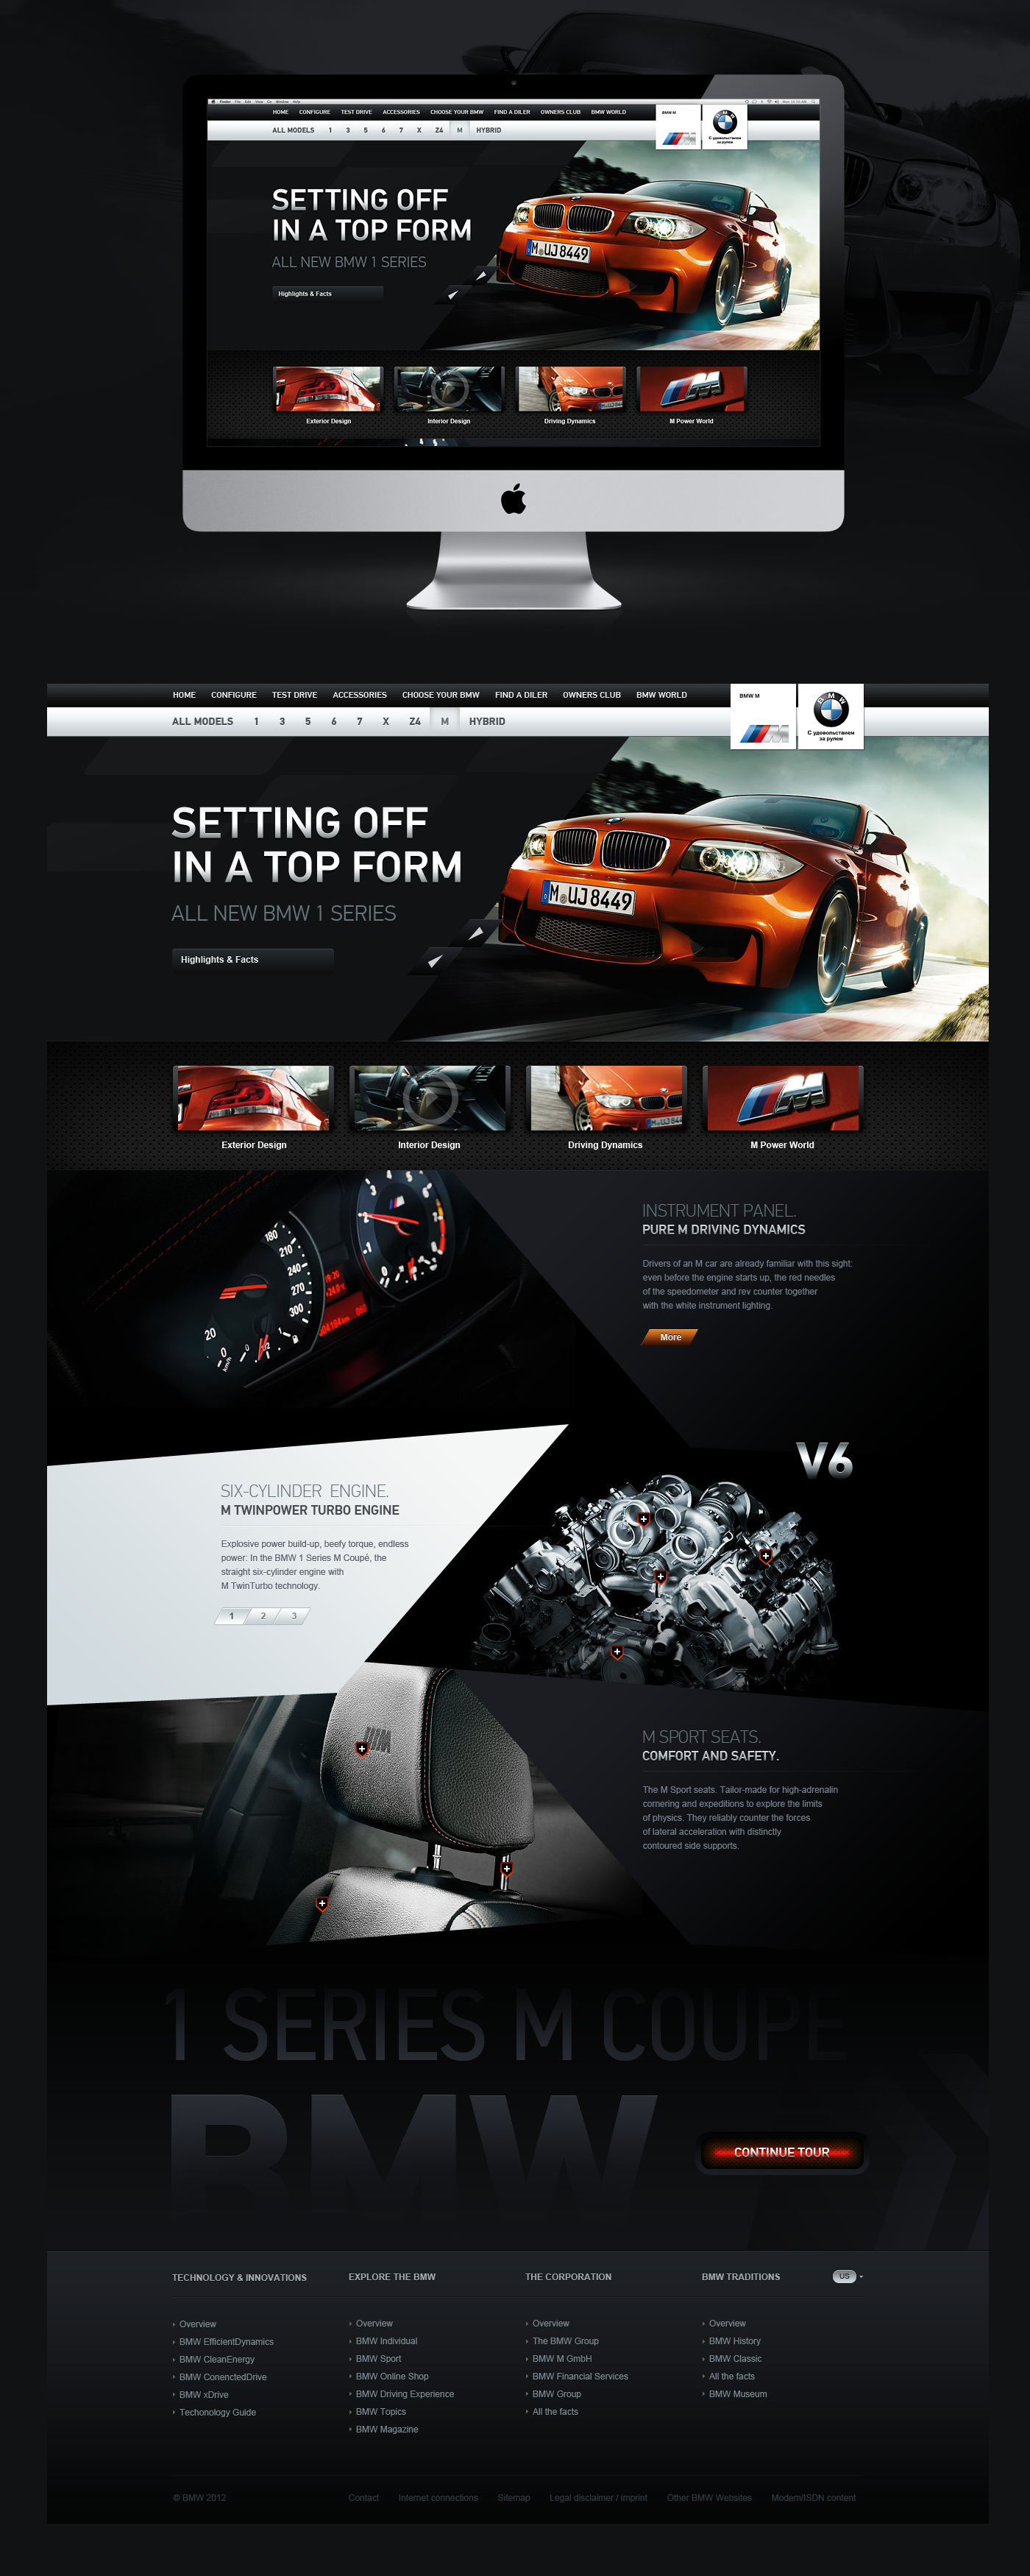 M1 Coupe 2012 Promo Website - ????????? ????????? ??????? ????????. ?????? ??????, ??????????? ??????, ??????????, ??????????? ??????